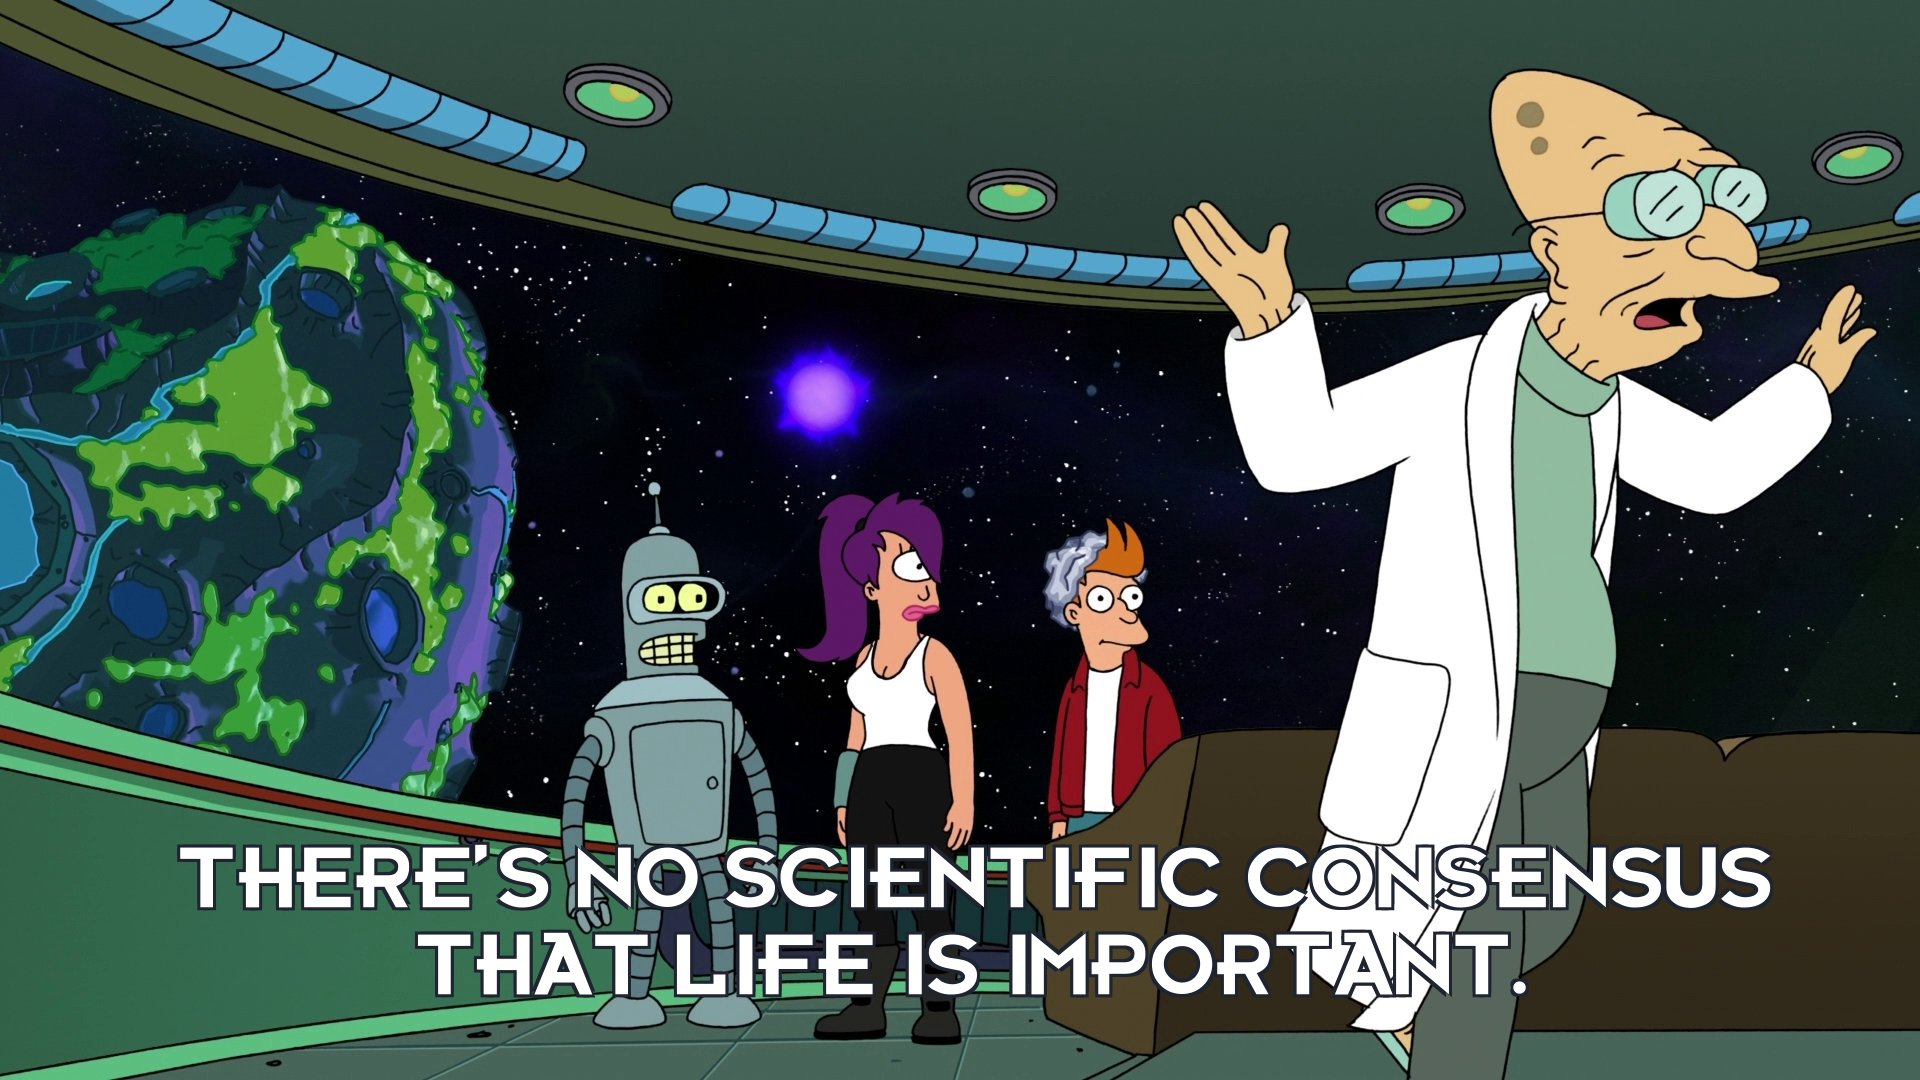 Prof Hubert J Farnsworth: There's no scientific consensus that life is important.